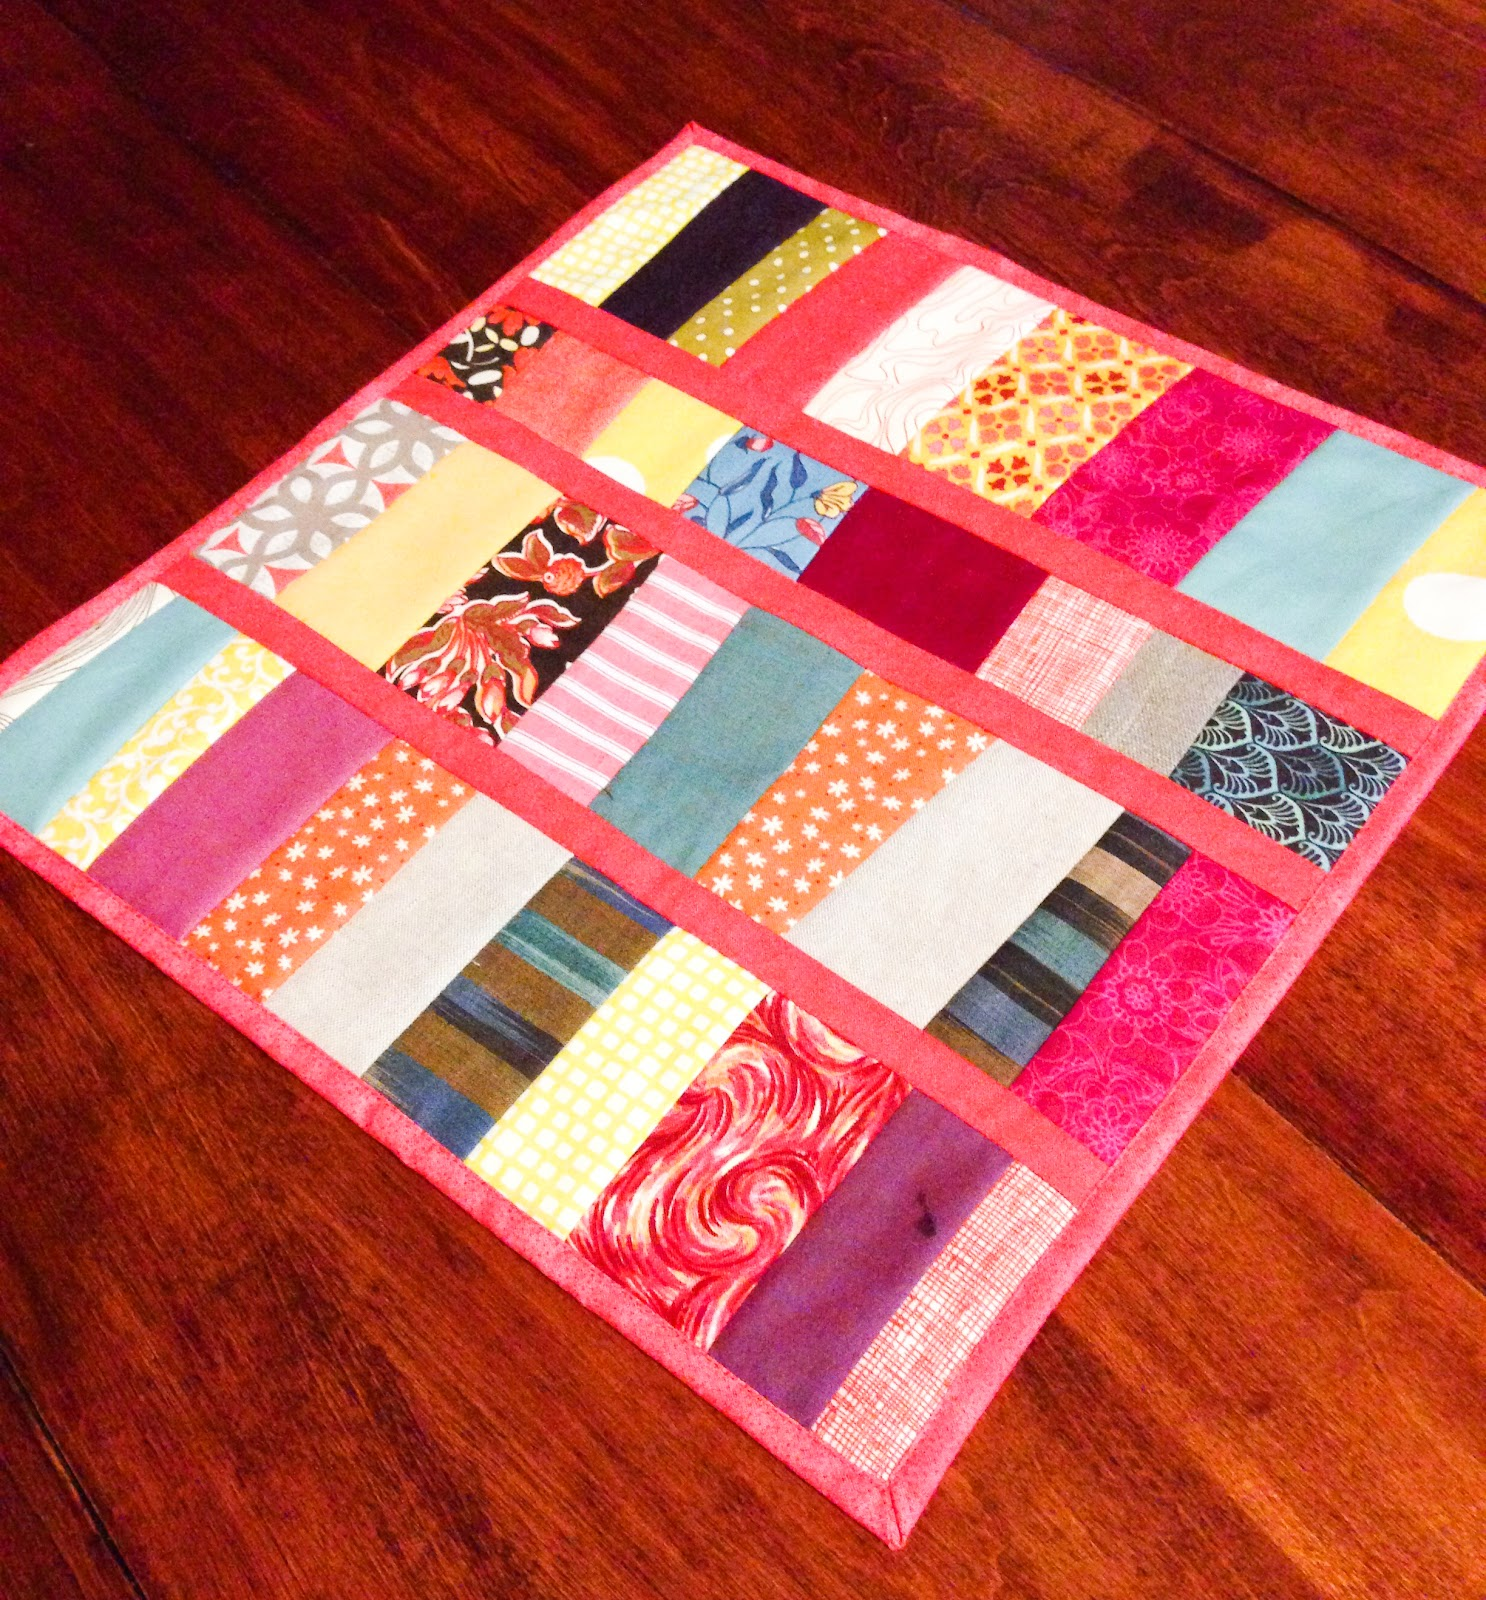 batting the finished ve quilting piecing seasoned when project a you quilt understanding that point know in homemaker